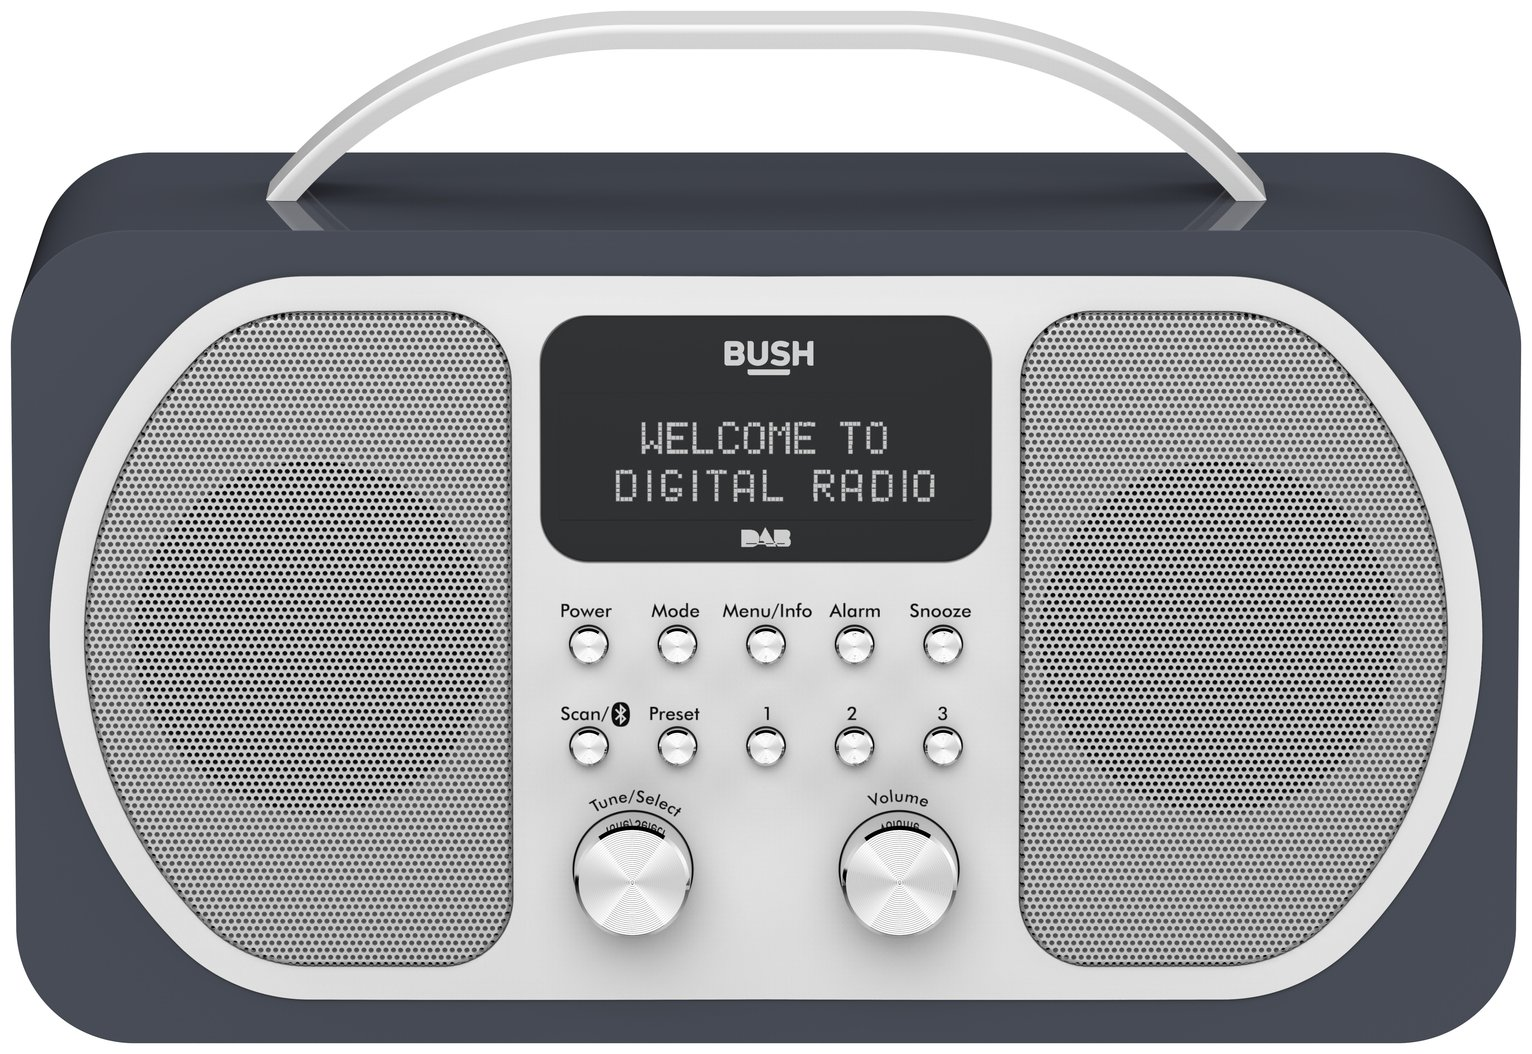 Bush DAB Bluetooth Radio - Midnight Blue